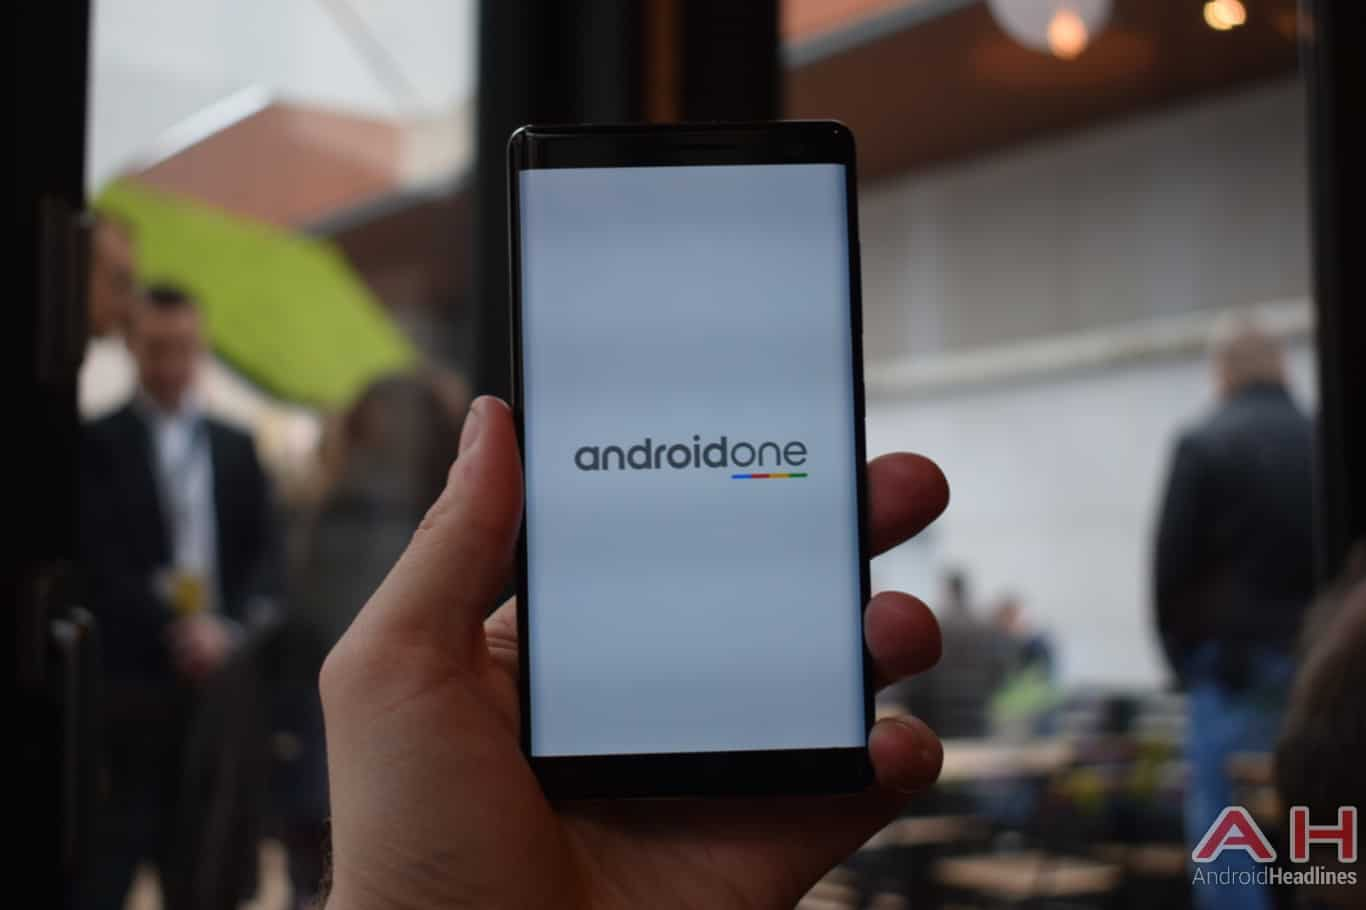 AH Nokia 8 Sirocco hands on MWC 2018 5